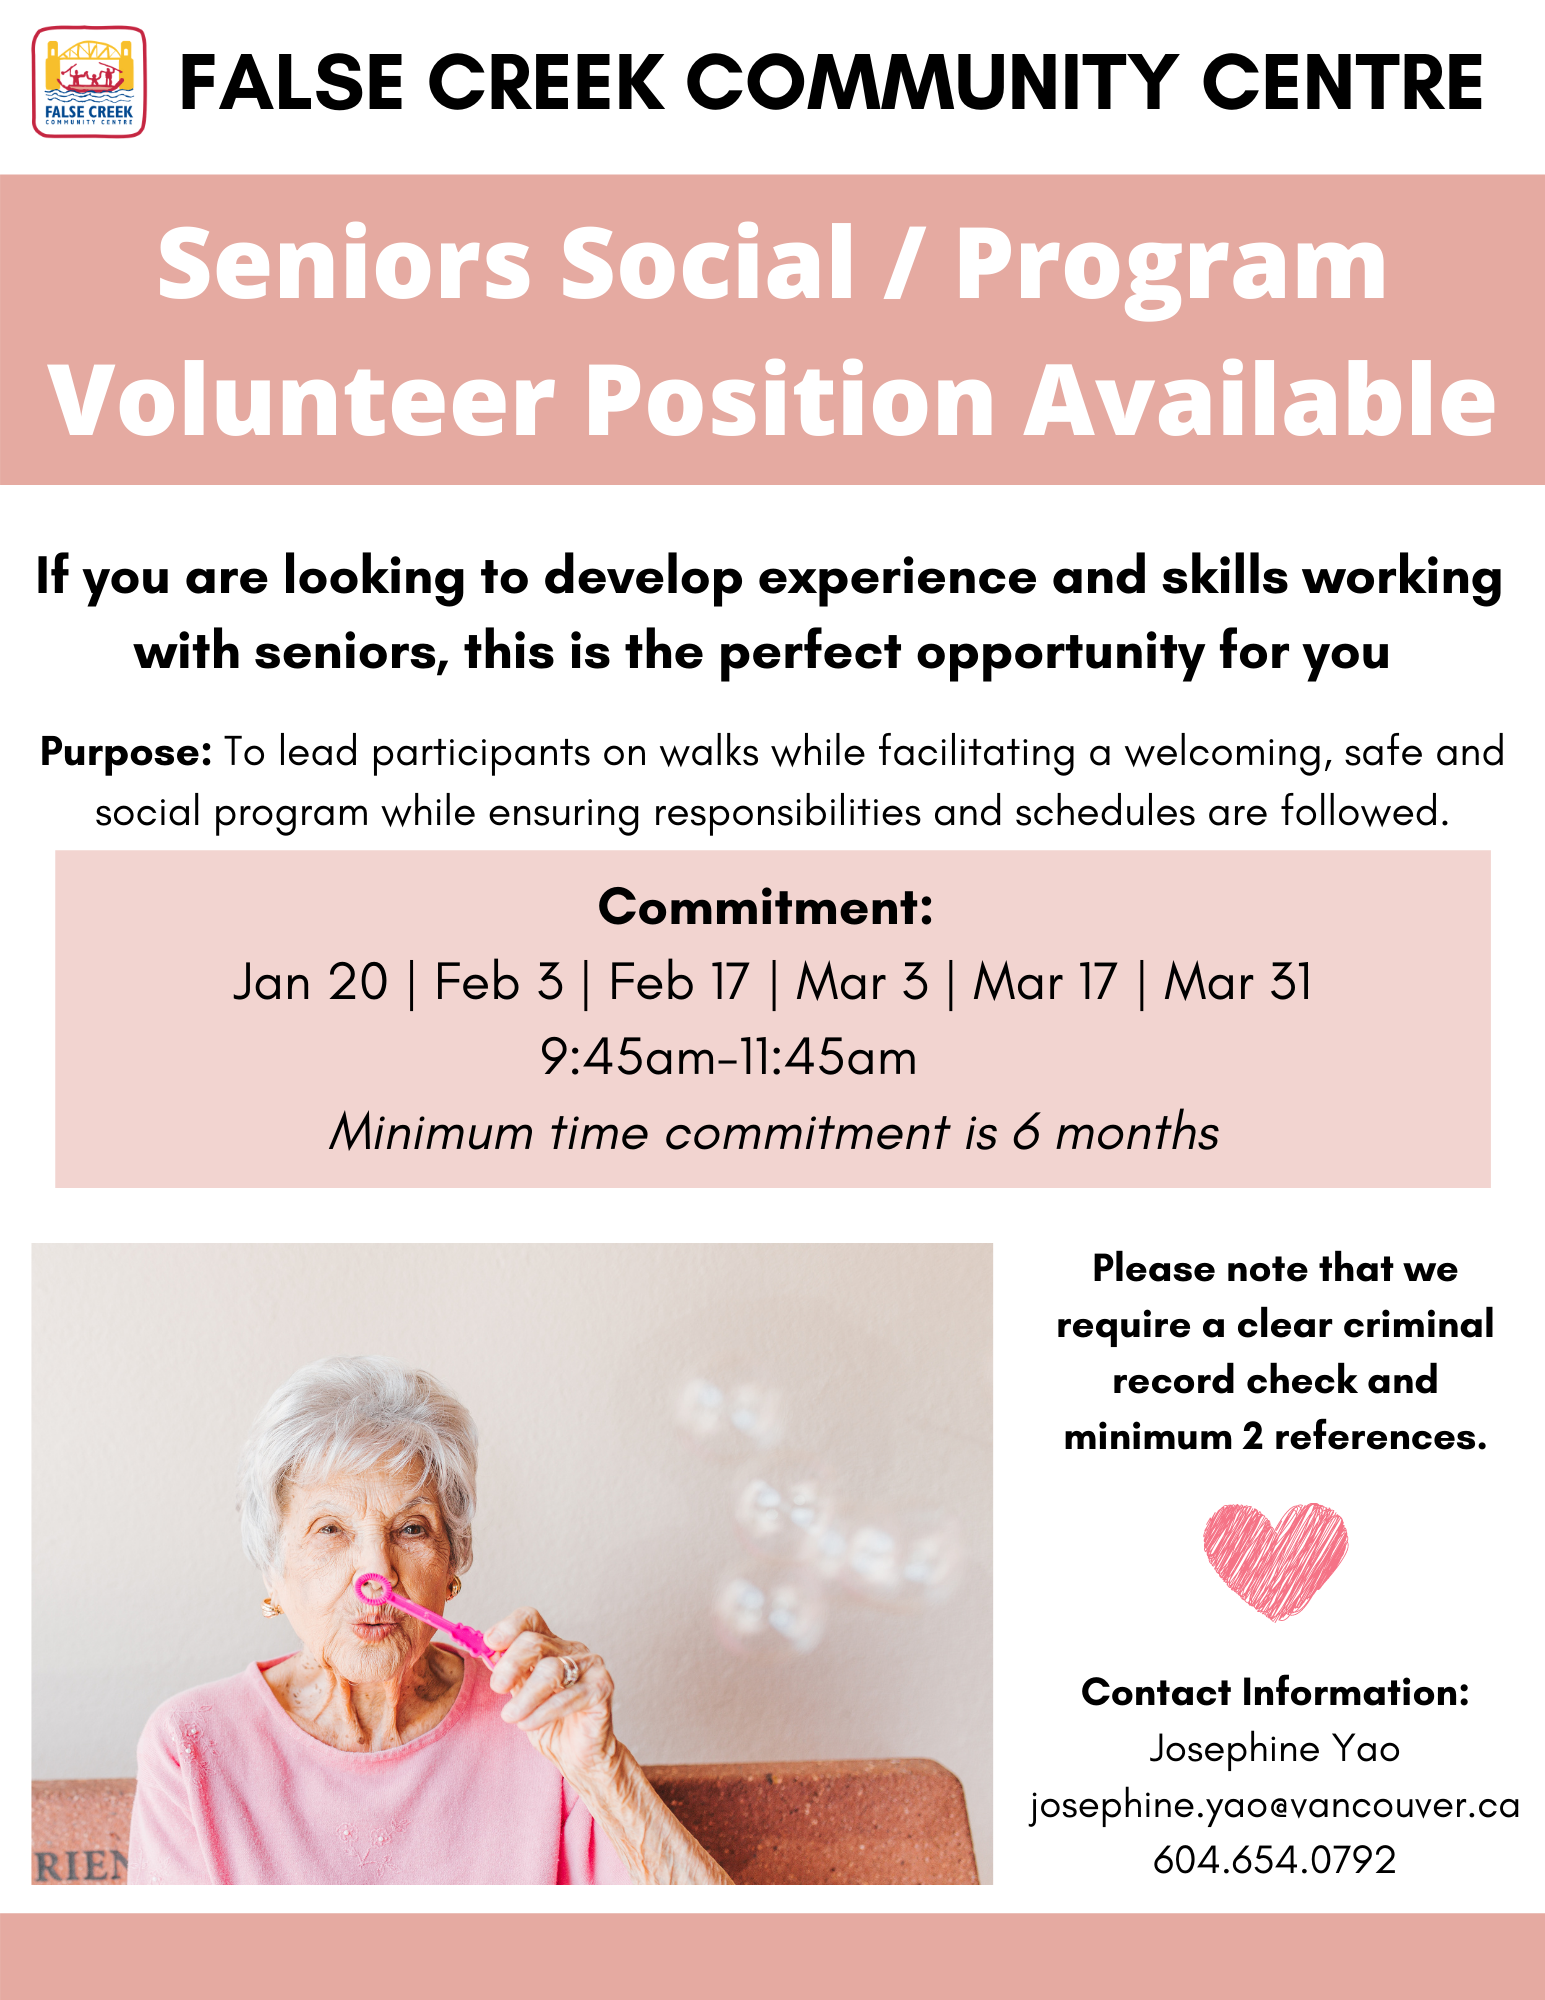 Seniors Social / Program Volunteer Position Available If you are looking to develop experience and skills working with seniors, this is the perfect opportunity for you Purpose: To lead participants on walks while facilitating a welcoming, safe and social program while ensuring responsibilities and schedules are followed. Please note that we require a clear criminal record check and minimum 2 references.